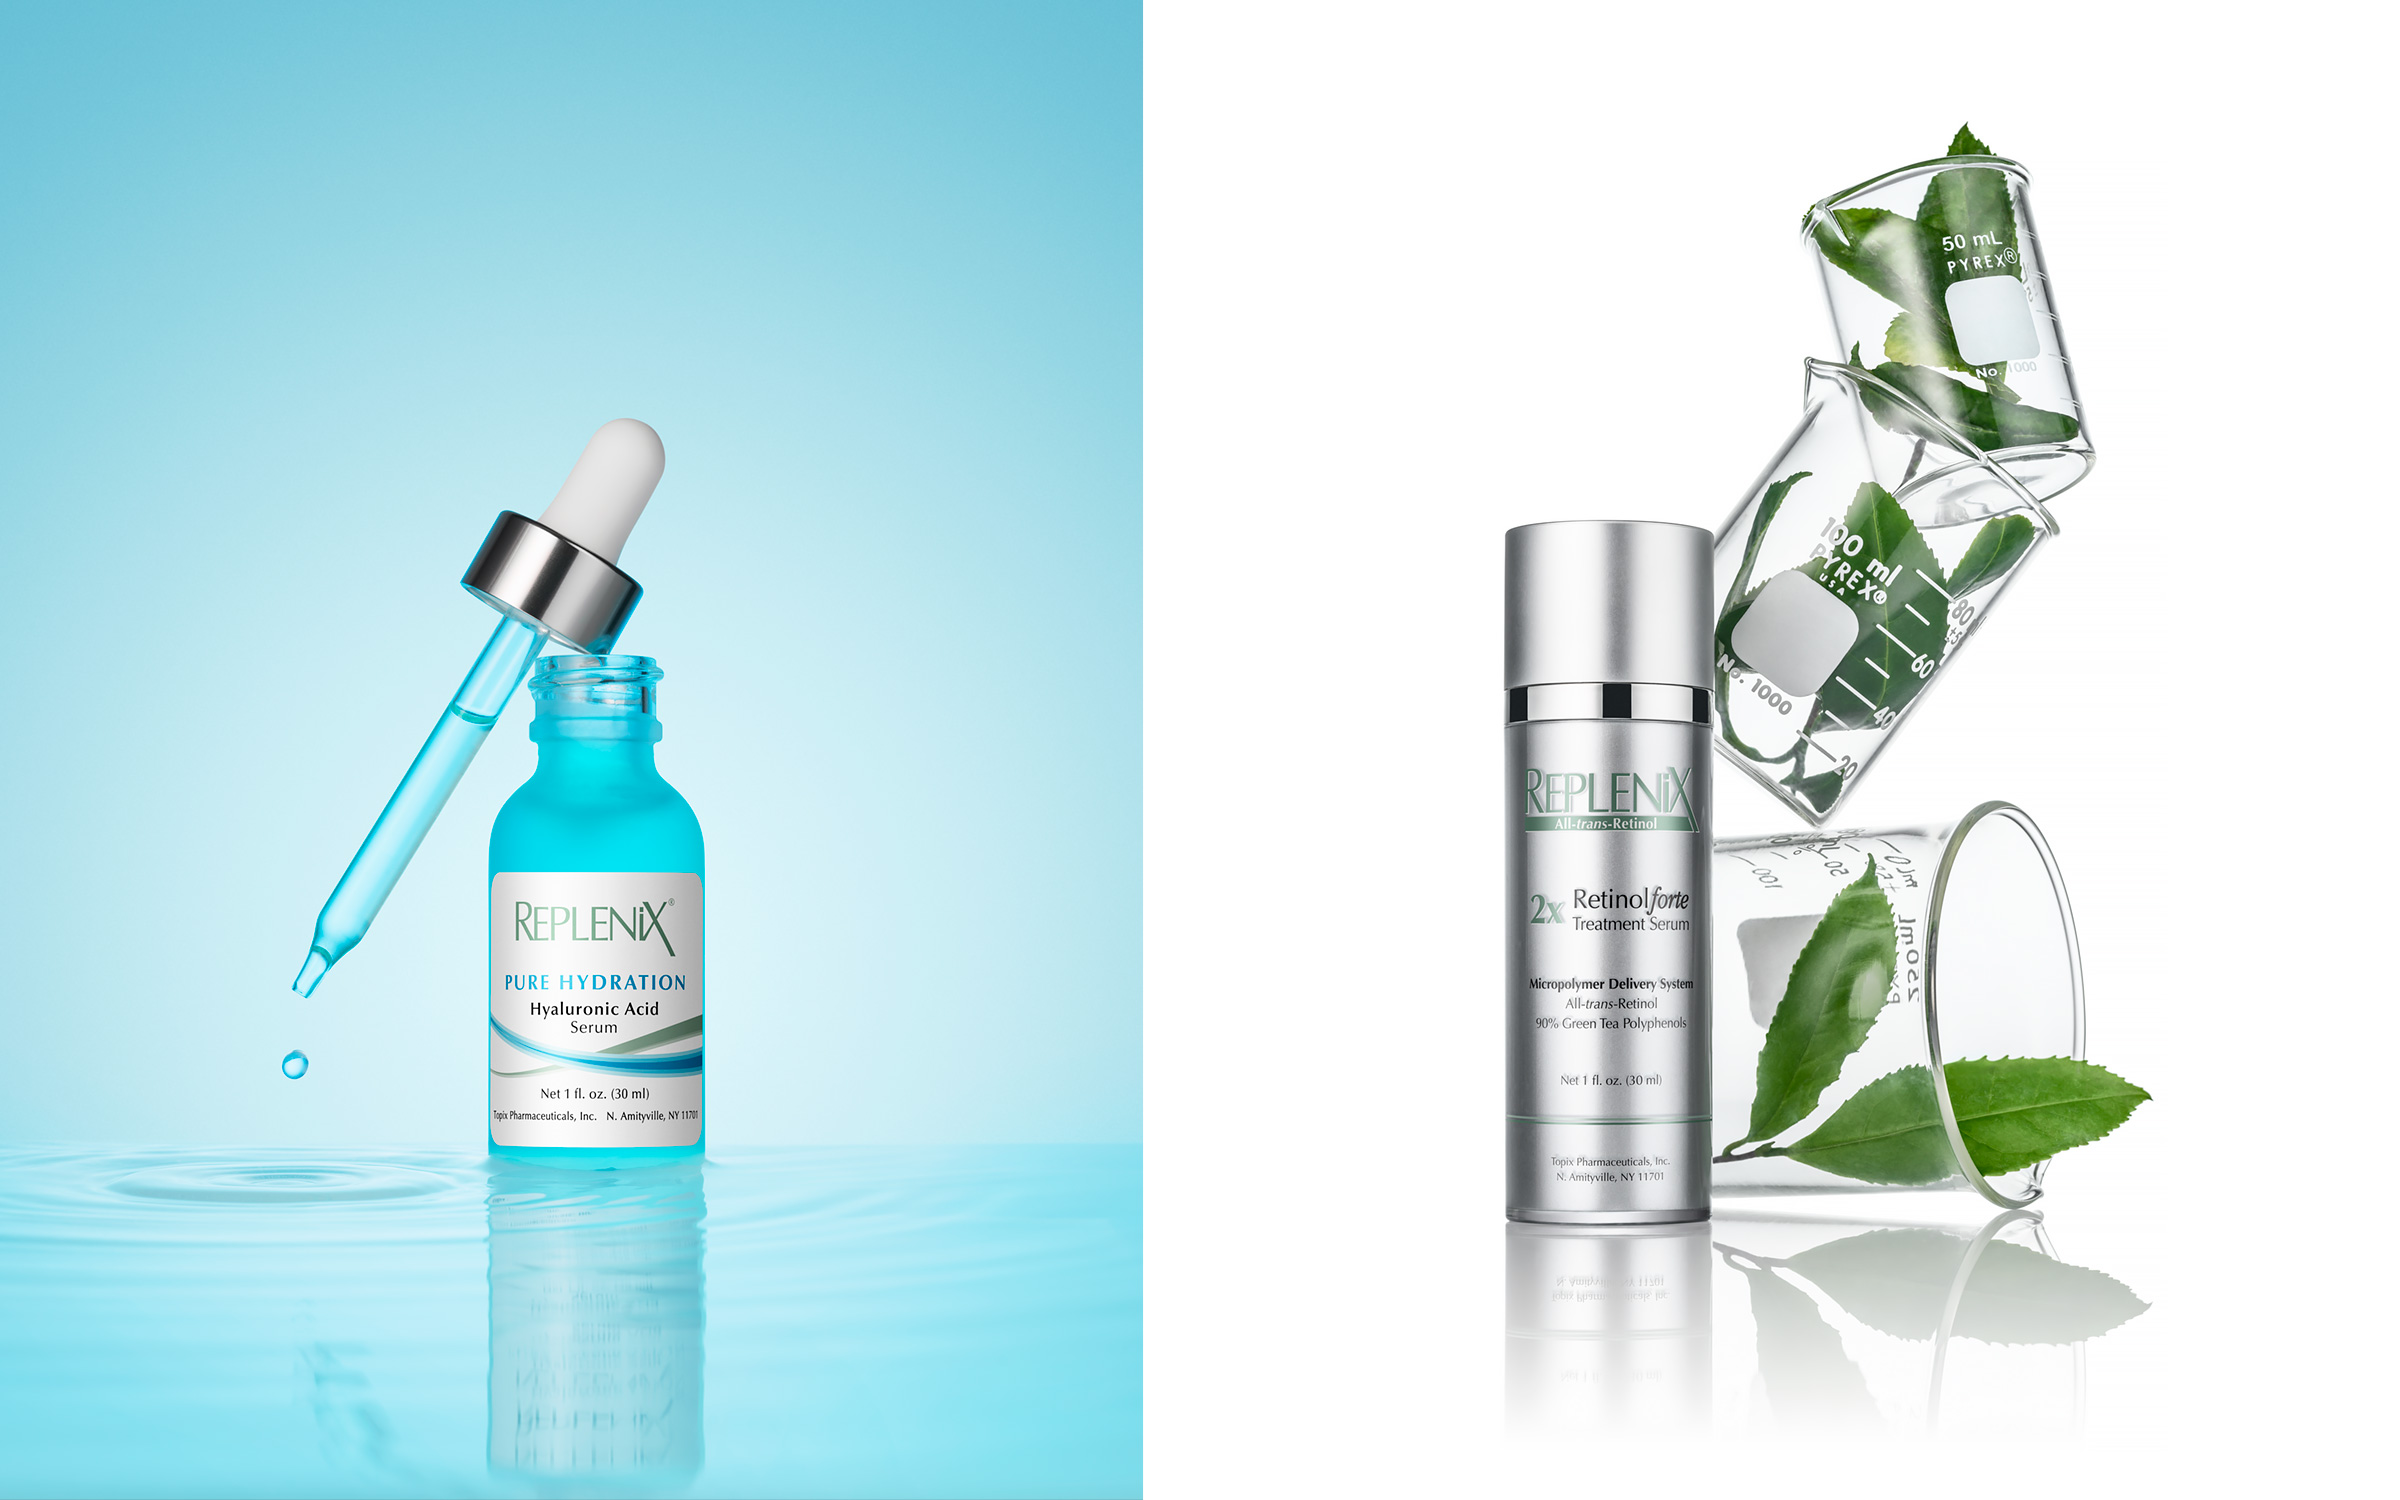 New York Skincare Photography And Still Life Photography By Zachary Goulko